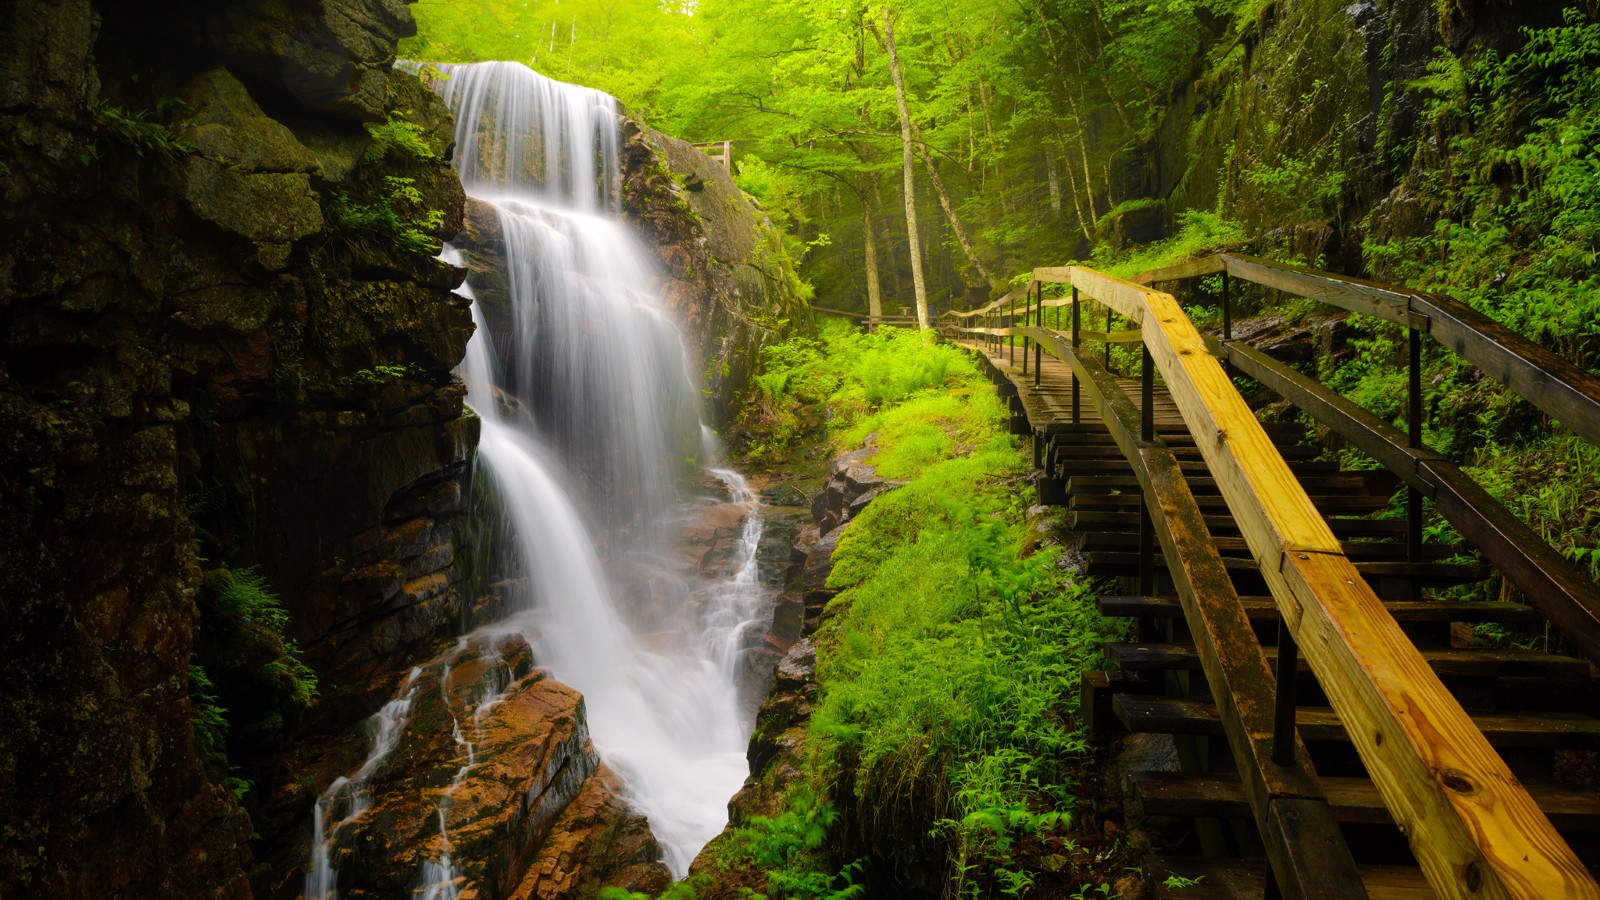 Avalanche Falls at The Flume, Franconia Notch State Park, New Hampshire